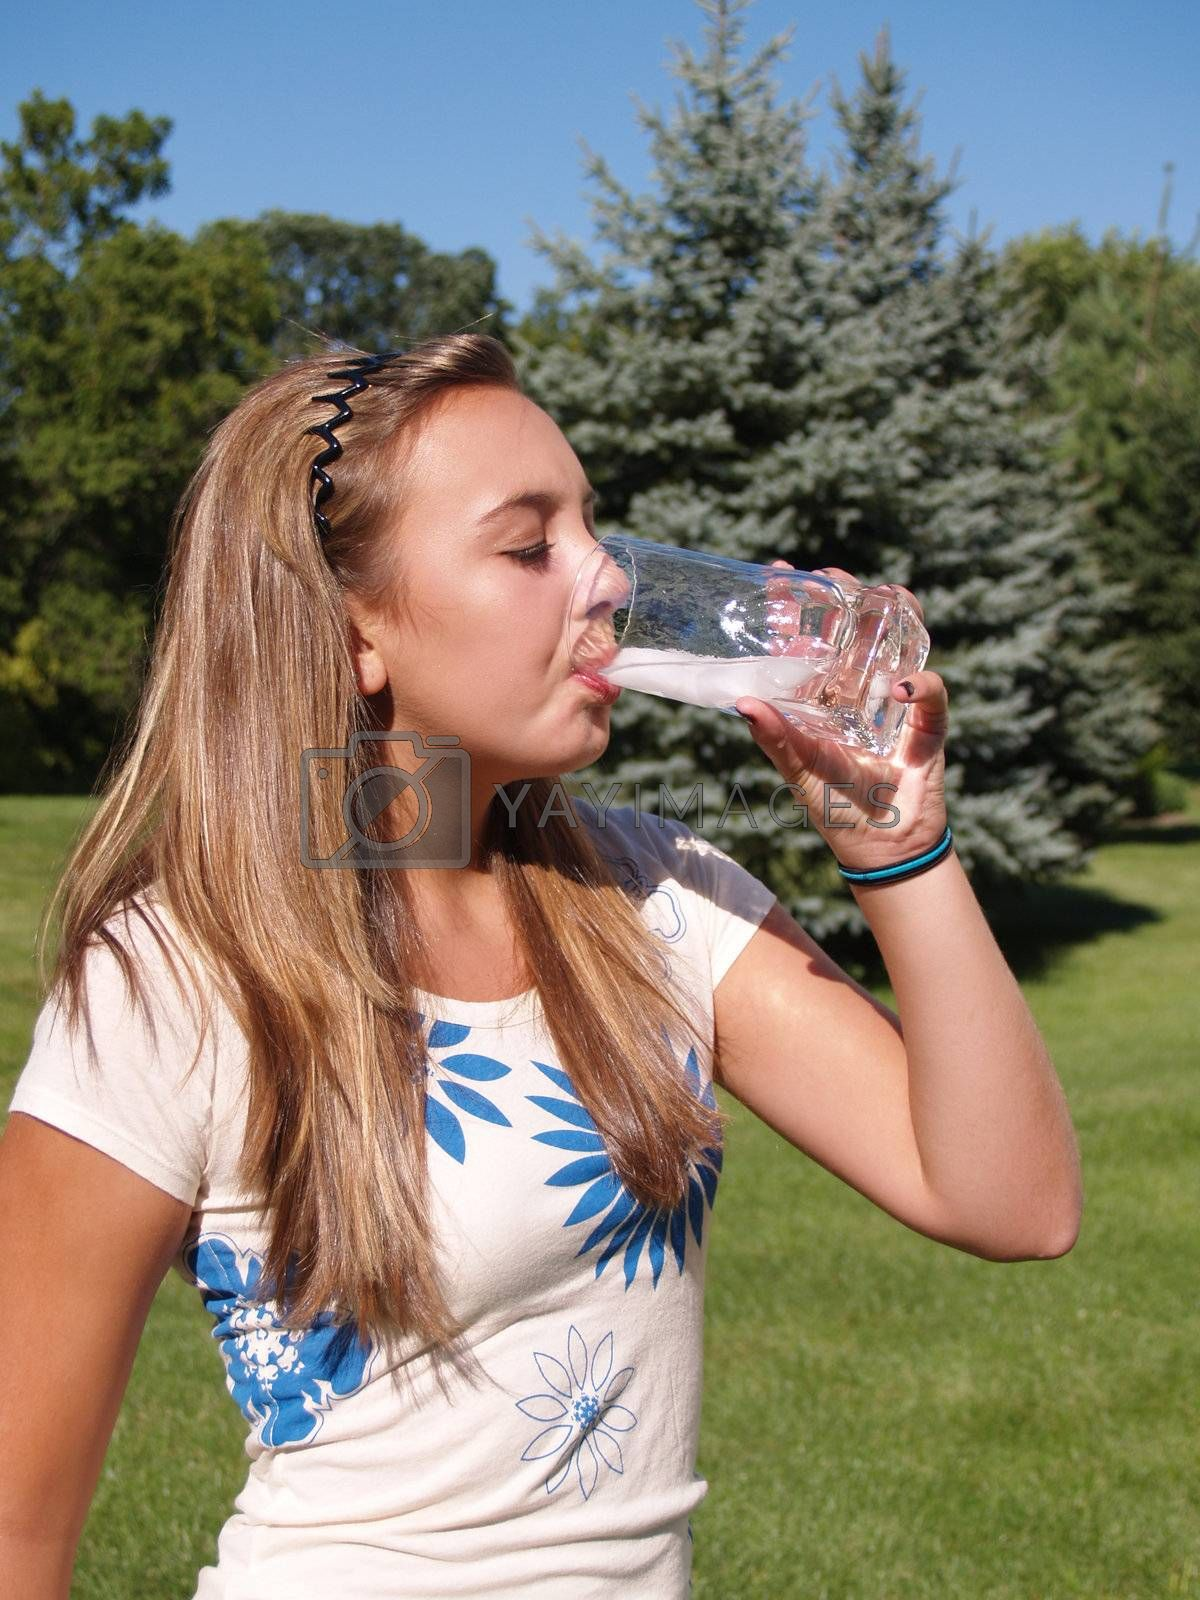 teenage girl drinking water in a glass